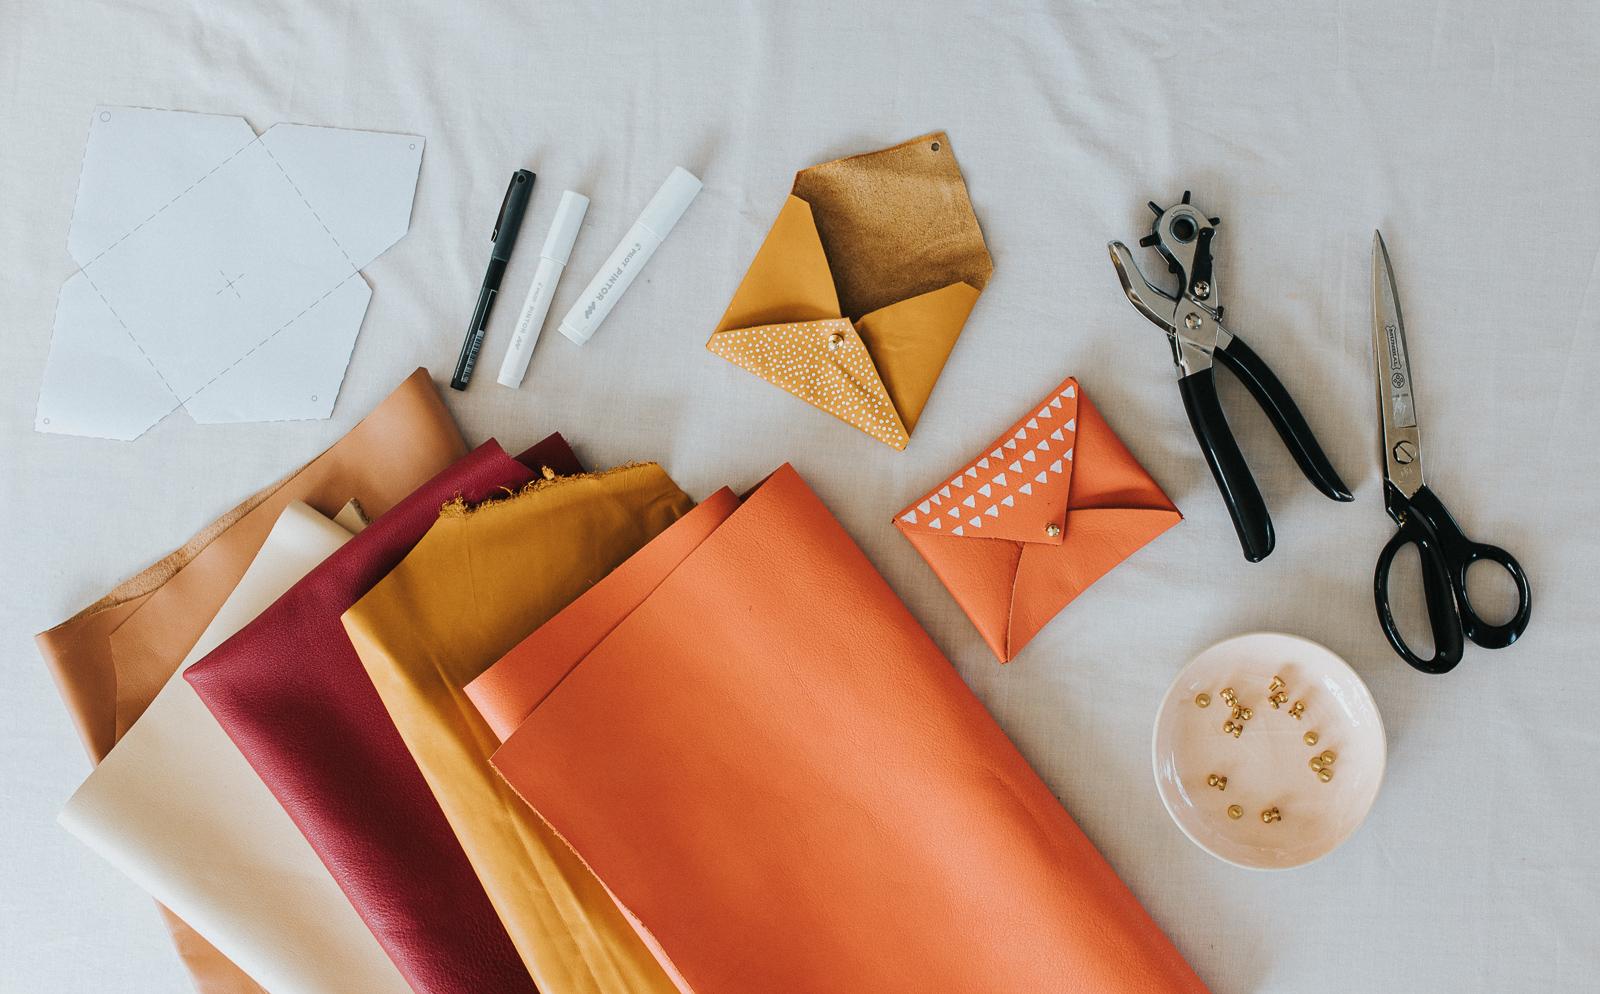 DIY_No_Sew_Leather_Pouches_by_Clever_Poppy SUpplies.jpg